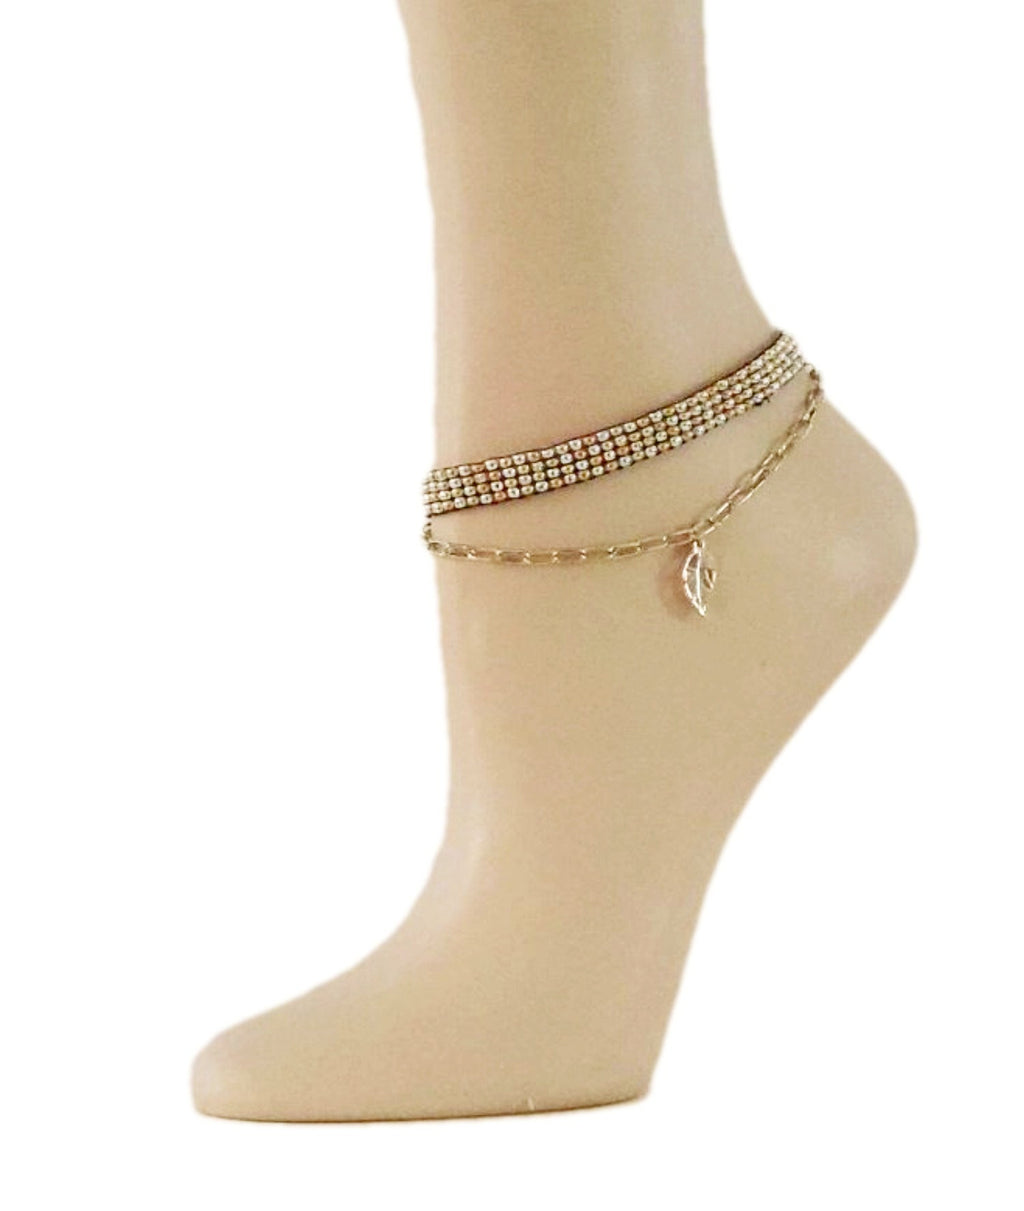 DIY Andrea Anklet - Global Trendz Fashion®